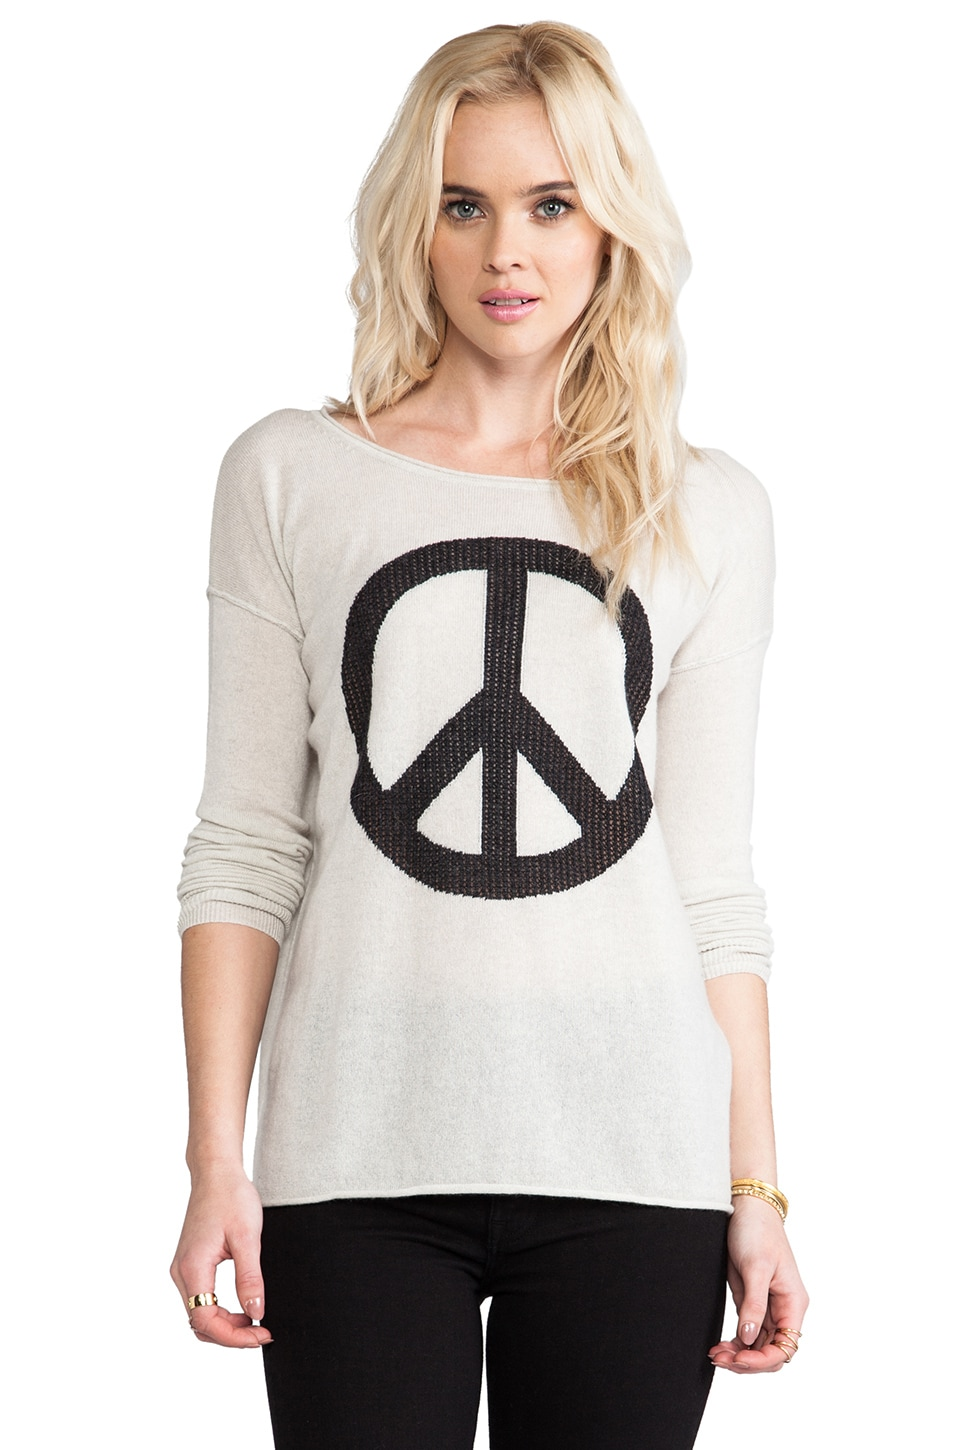 Autumn Cashmere Peace Crew Sweater in Hemp/Pepper